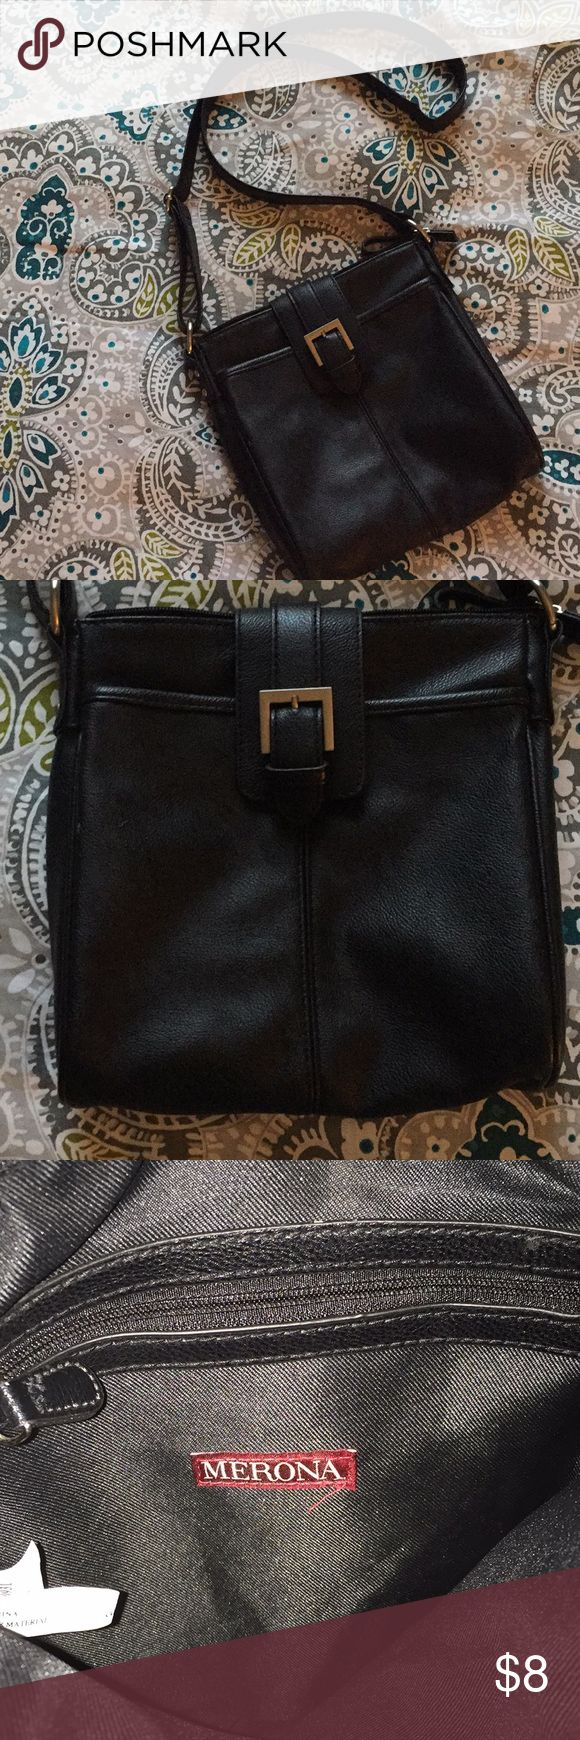 Black crossbody purse Black crossbody purse. Merona brand. Adjustable strap. Only worn once. Purchased from Target. Merona Bags Crossbody Bags